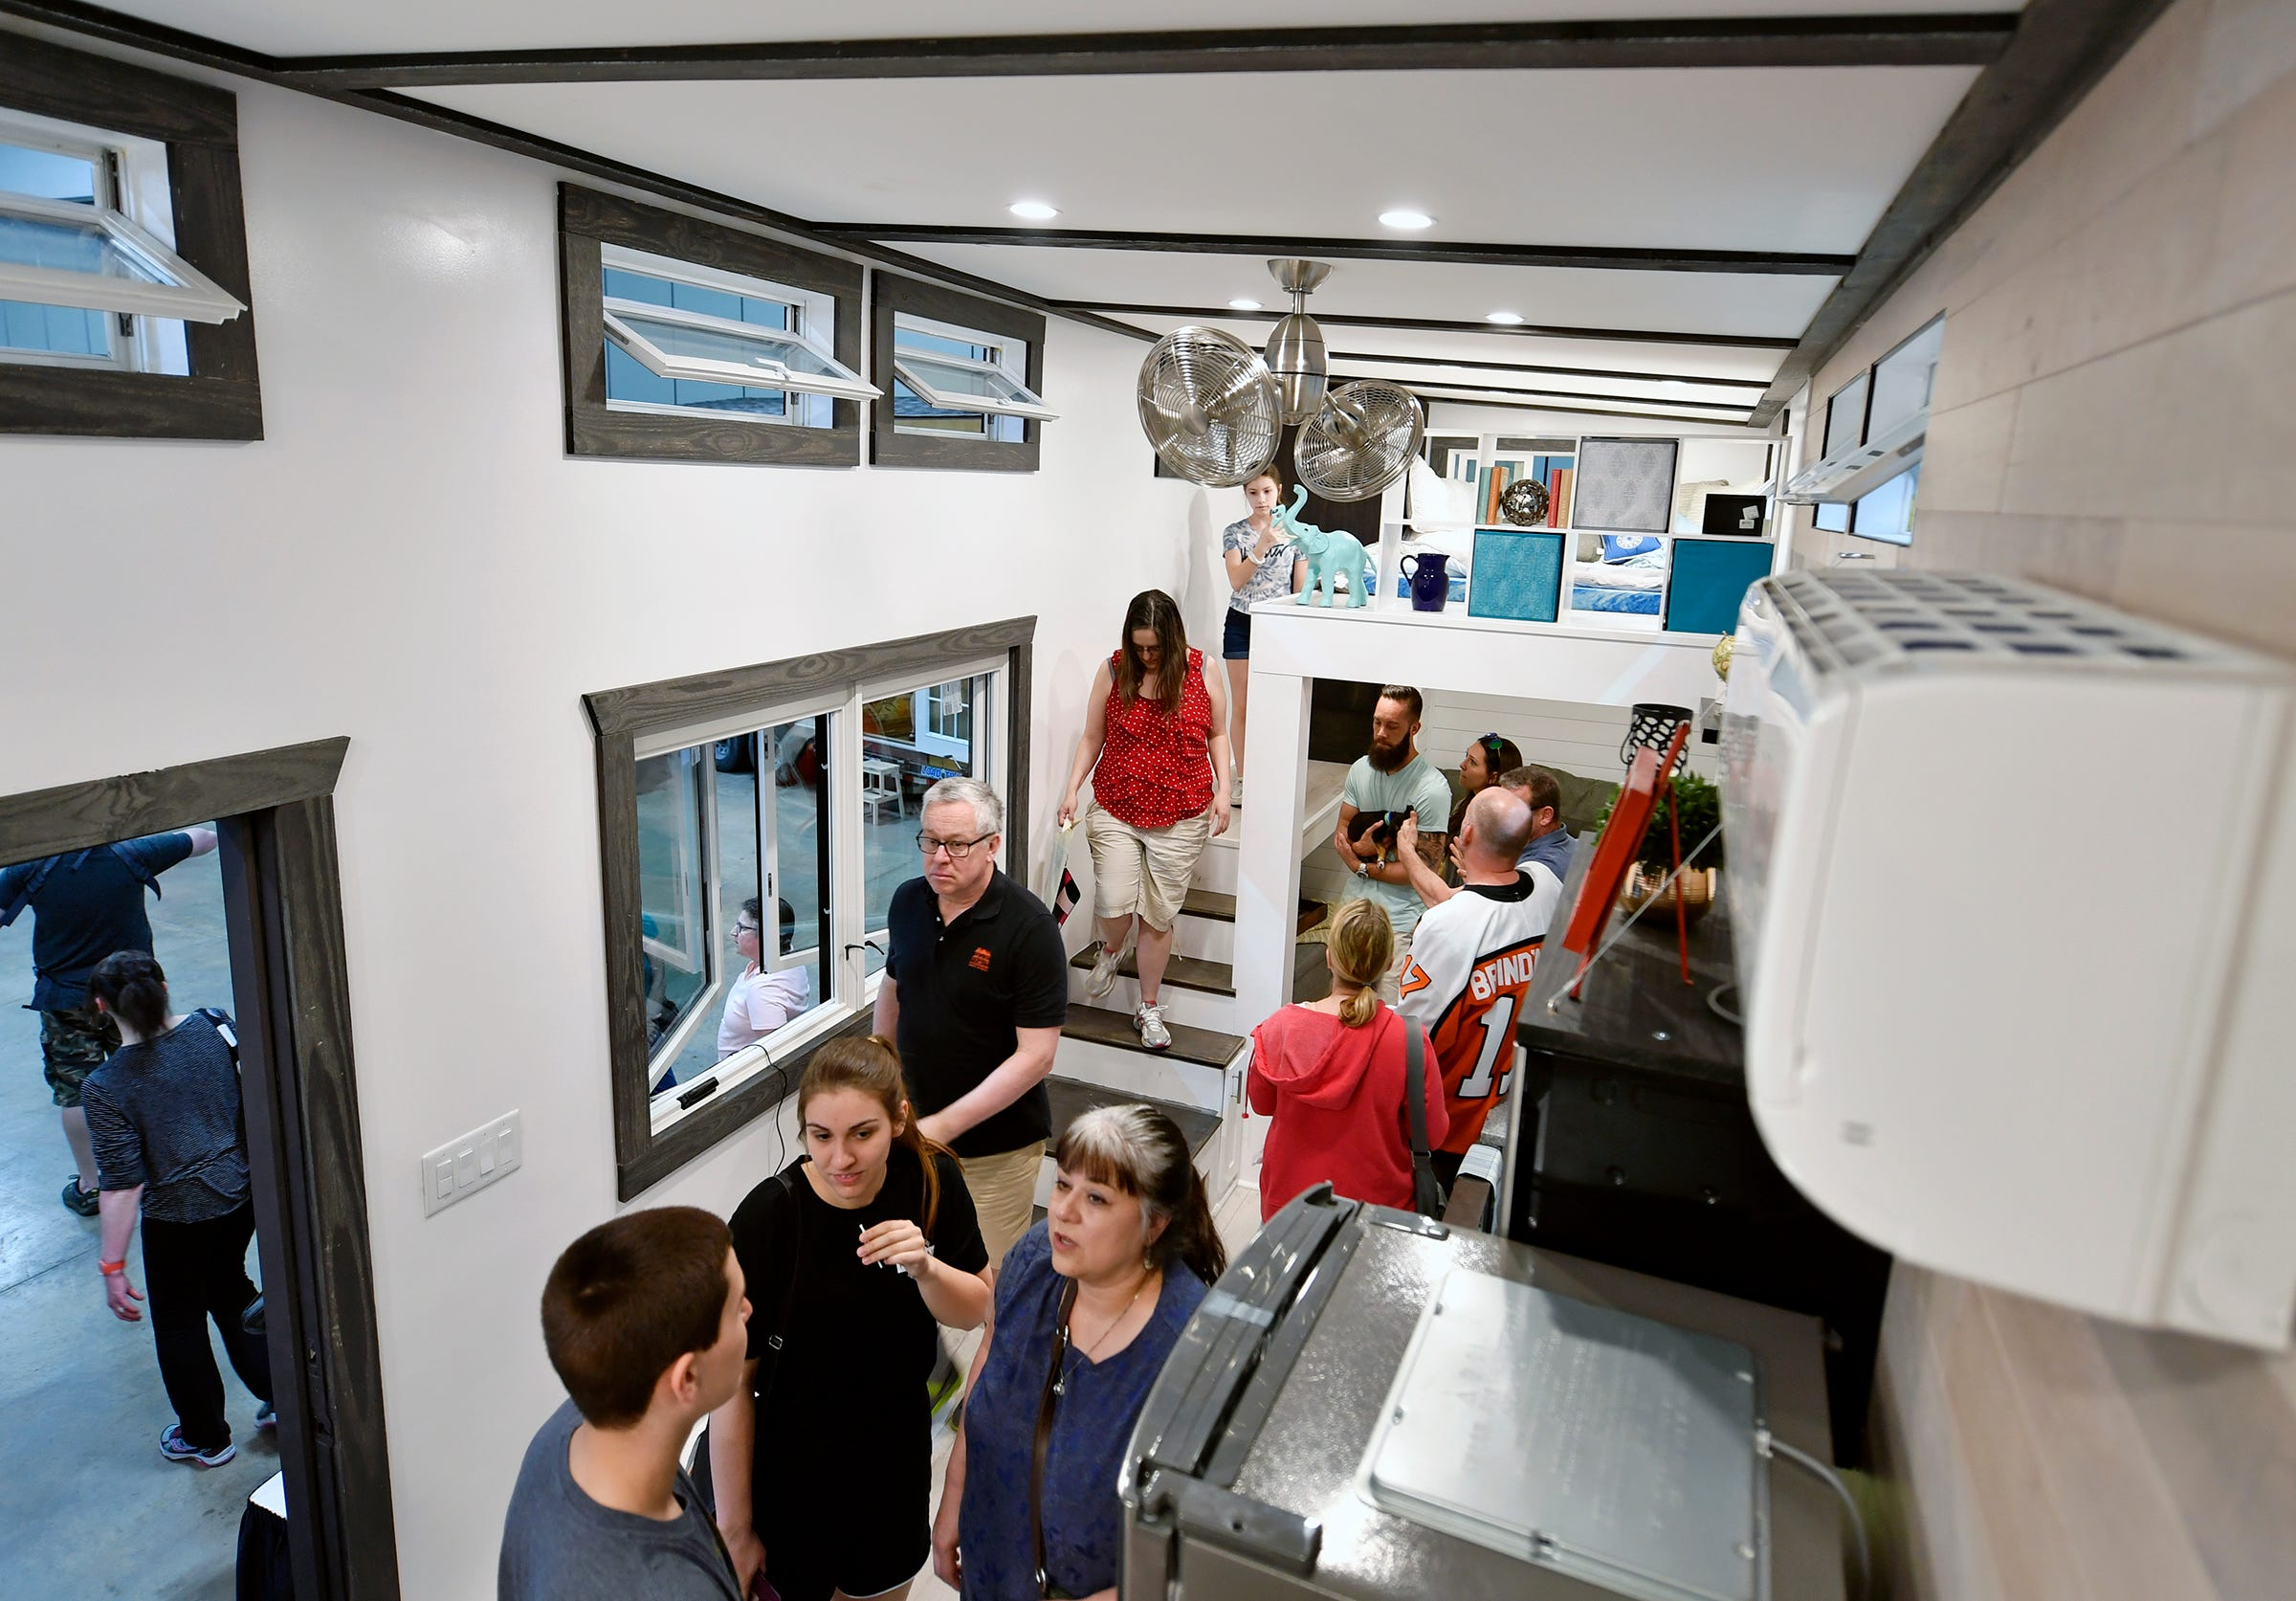 Tiny Homes, Not Allowed In York County, Draw Crowds At Expo